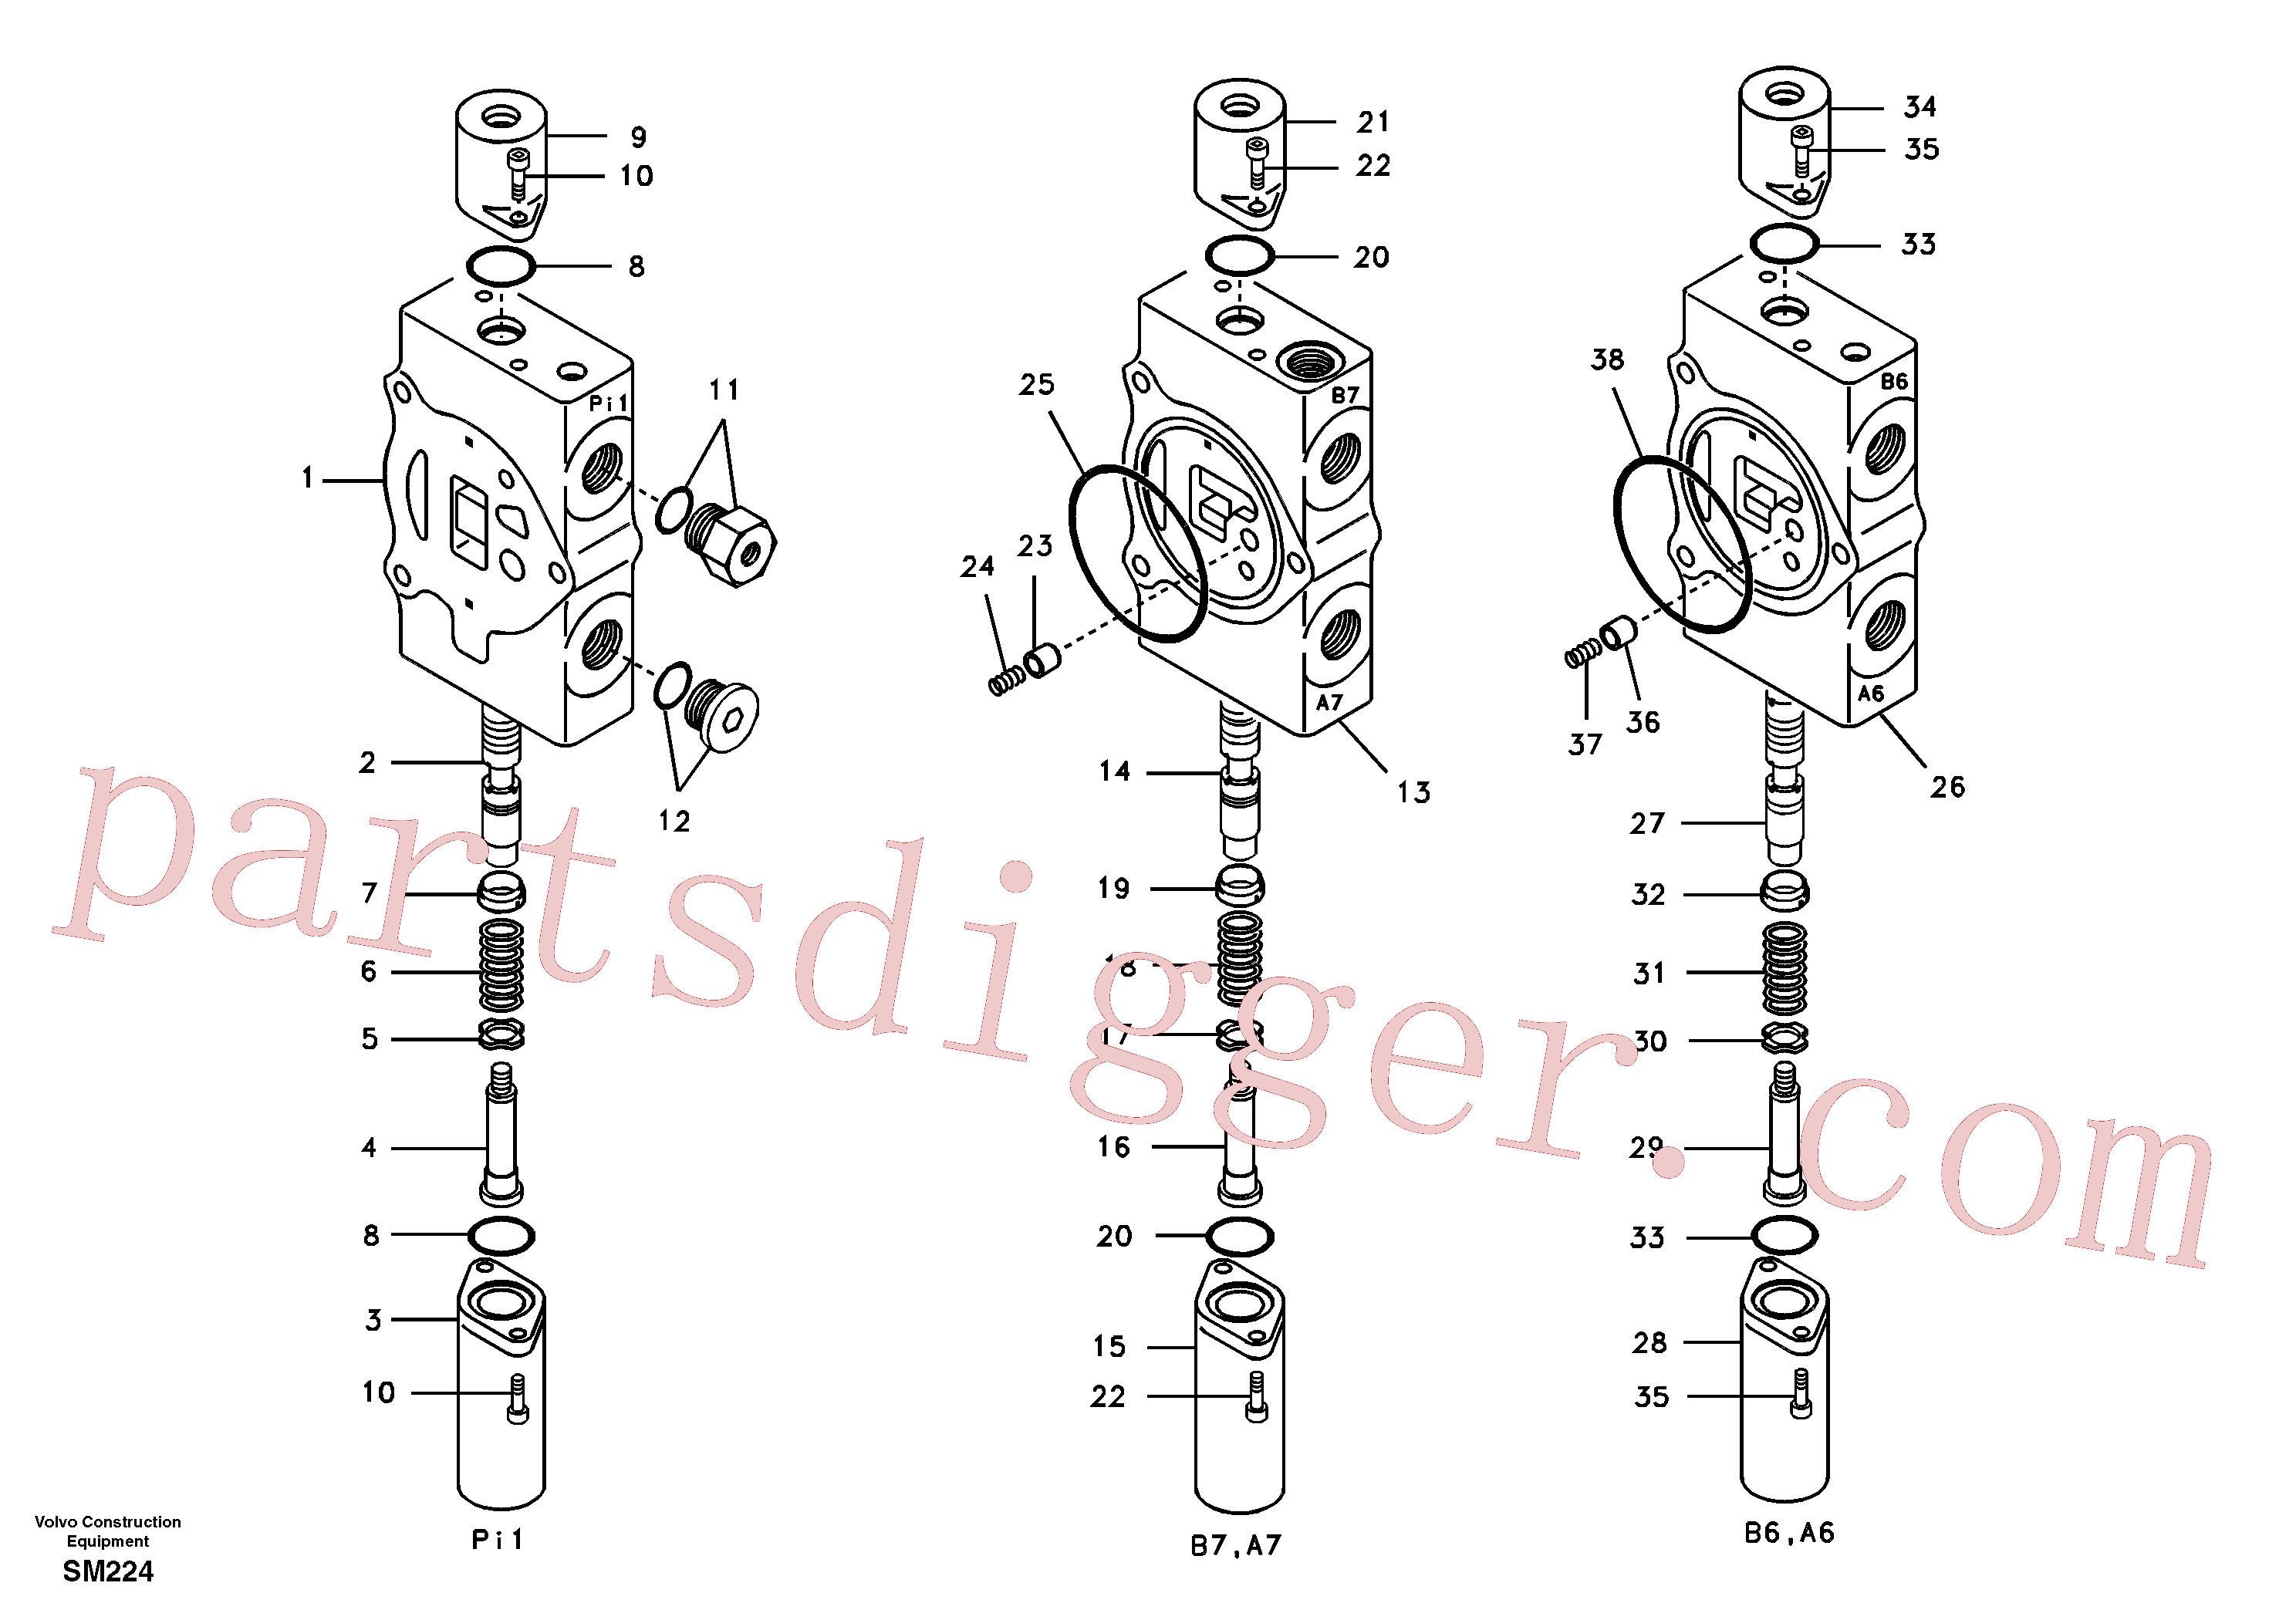 SA8230-23690 for Volvo Main control valve, travel straight forward and dipper arm 1 and boom 2.(SM224 assembly)